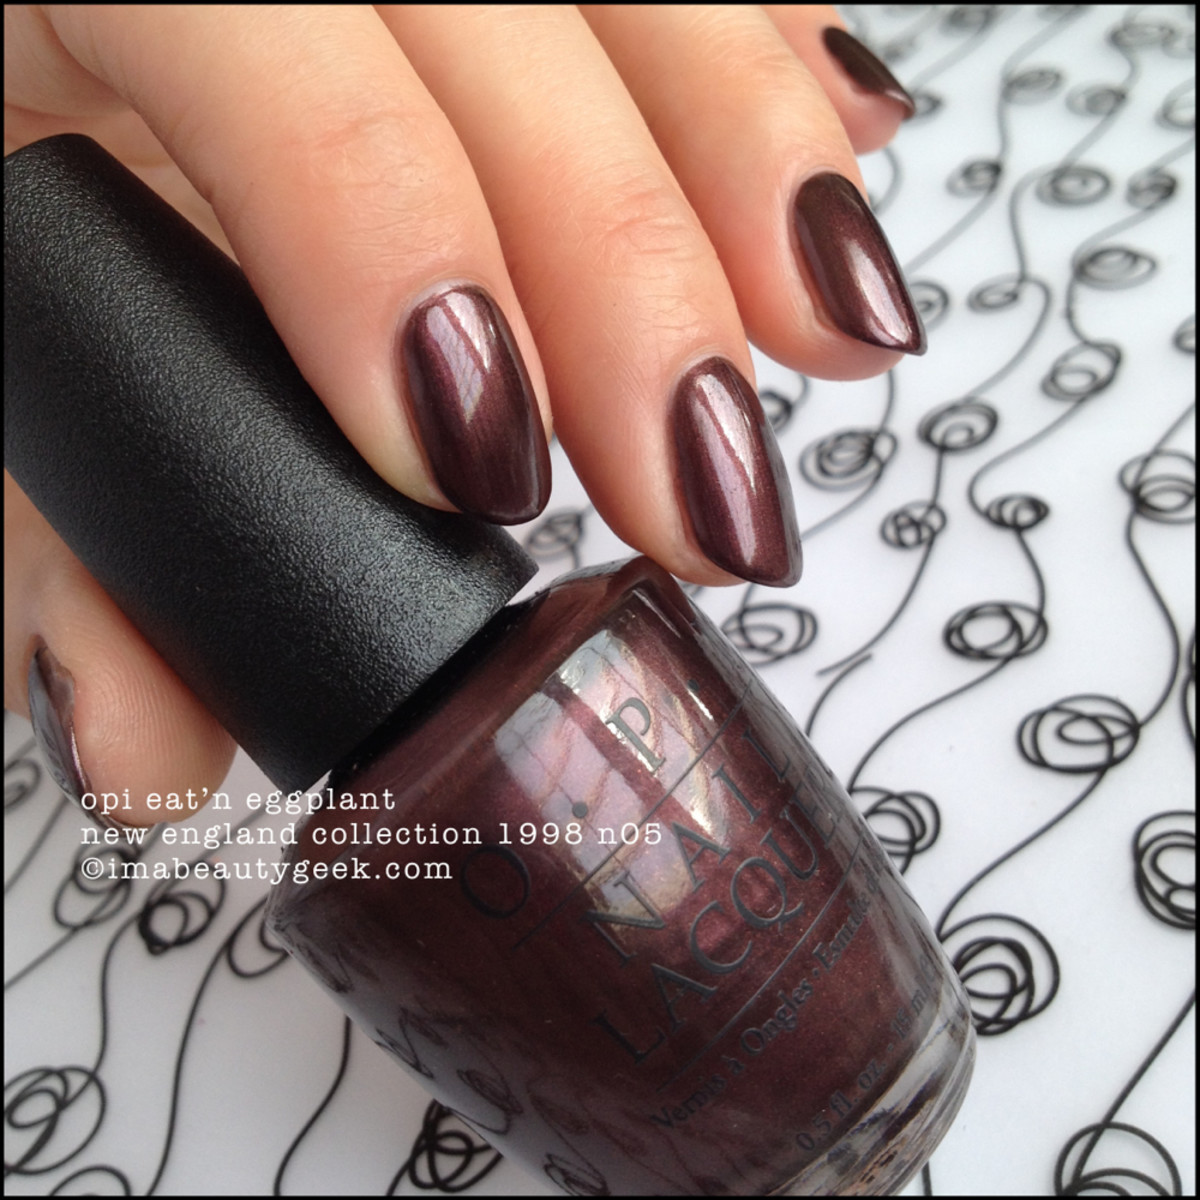 Black Label OPI Eat'n Eggplant New England Collection 1998